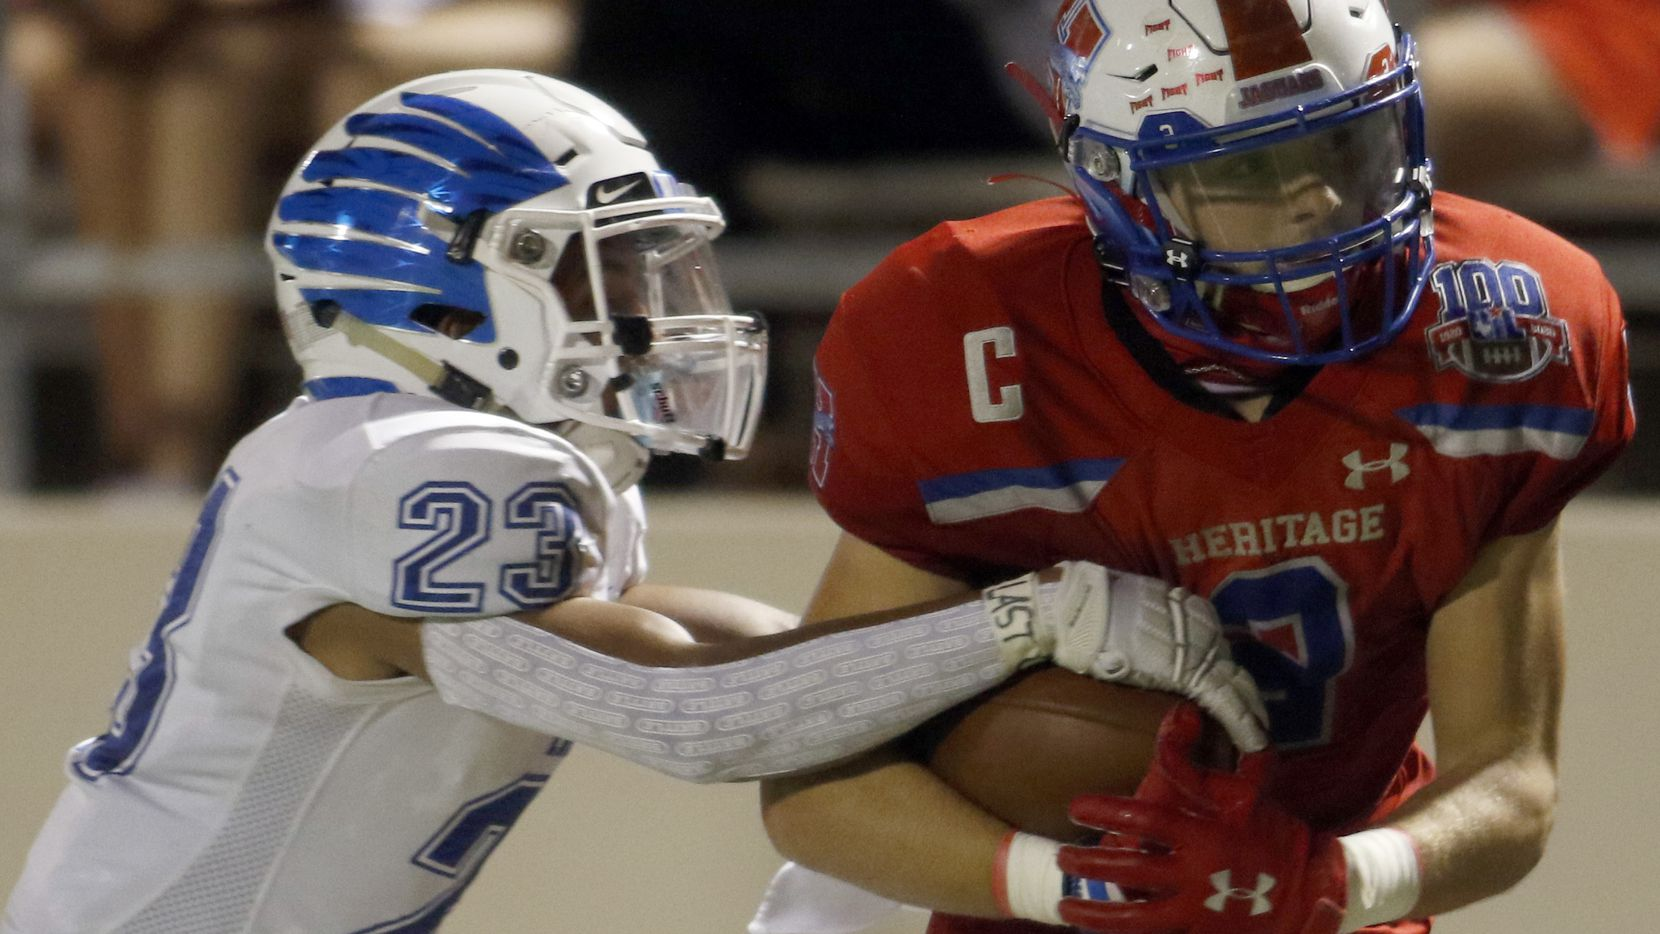 Midlothian Heritage running back Cullen Stone (2) works to protect the ball as he is tackled by Lindale defensive back Arik Williams (23) following a long ground gainer which set up a second quarter Jaguars touchdown. The two teams played their Class 4A football game at Midlothian ISD Multipurpose Stadium in Midlothian on September 4, 2020.